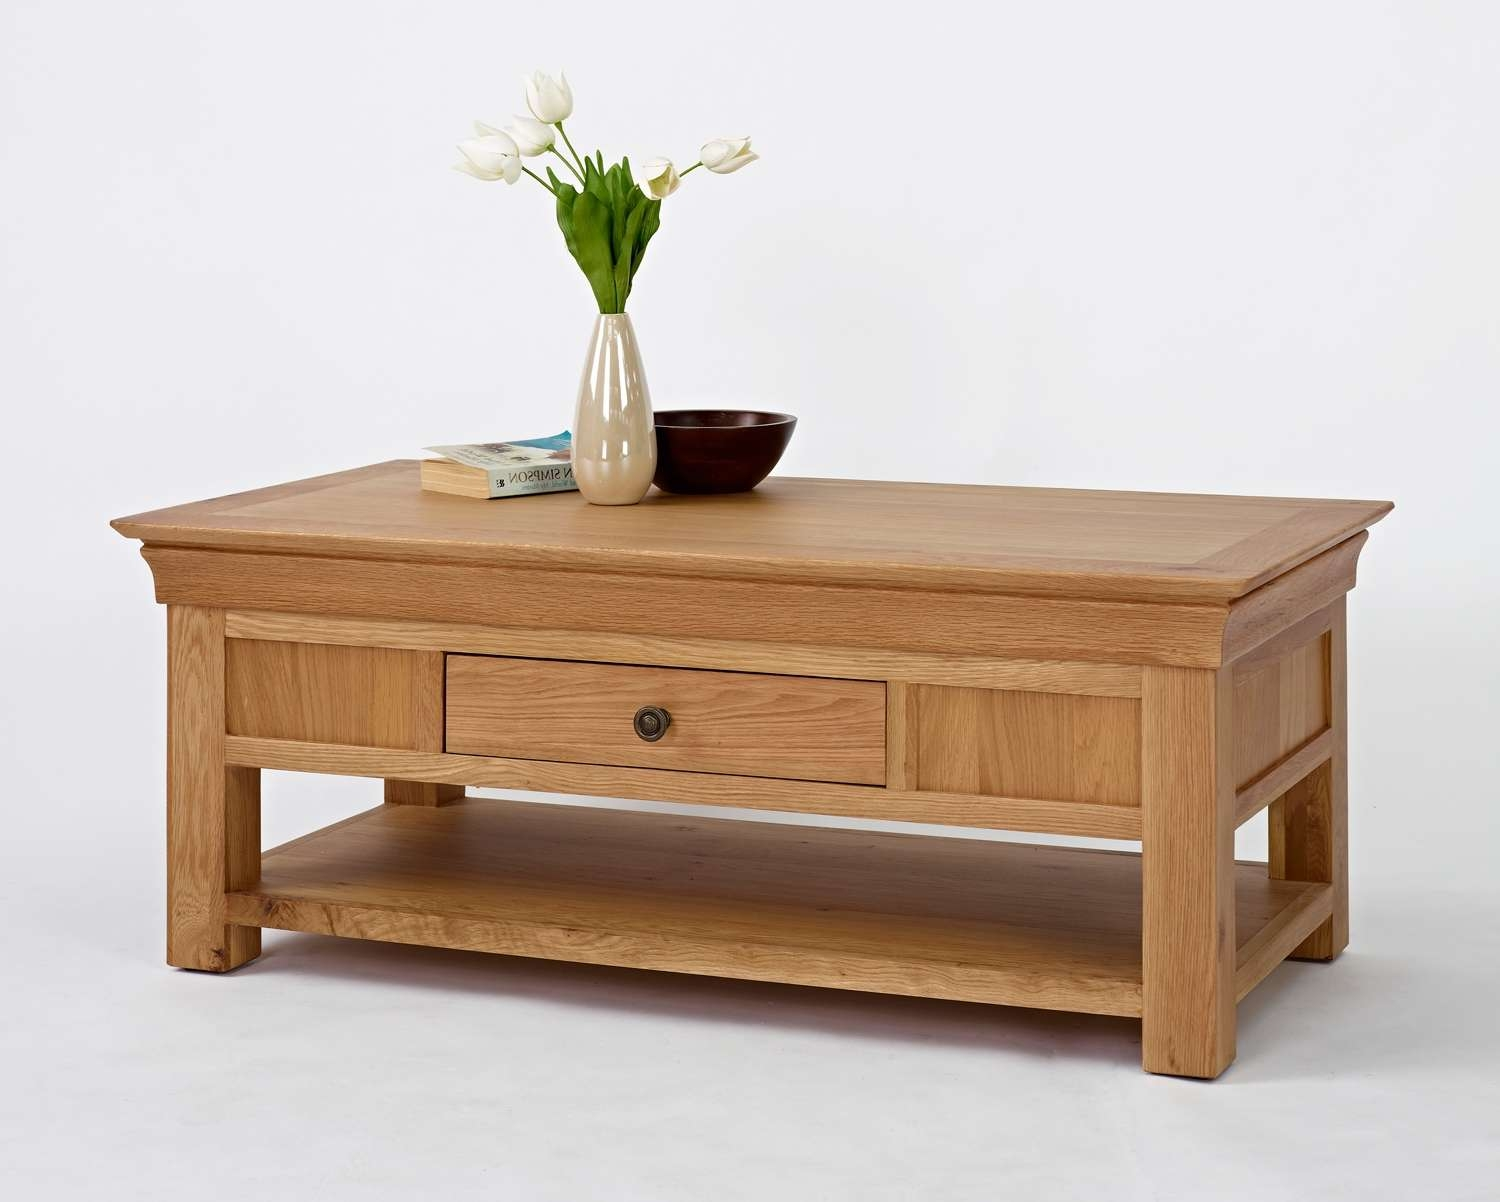 Dream Table Furniture For Widely Used Low Oak Coffee Tables (View 16 of 20)